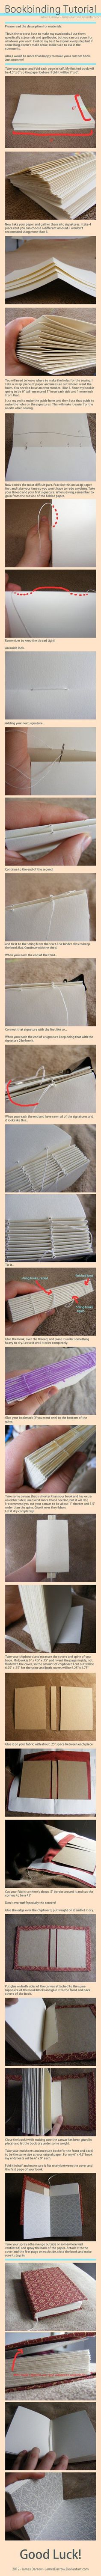 Bookbinding Tutorial by